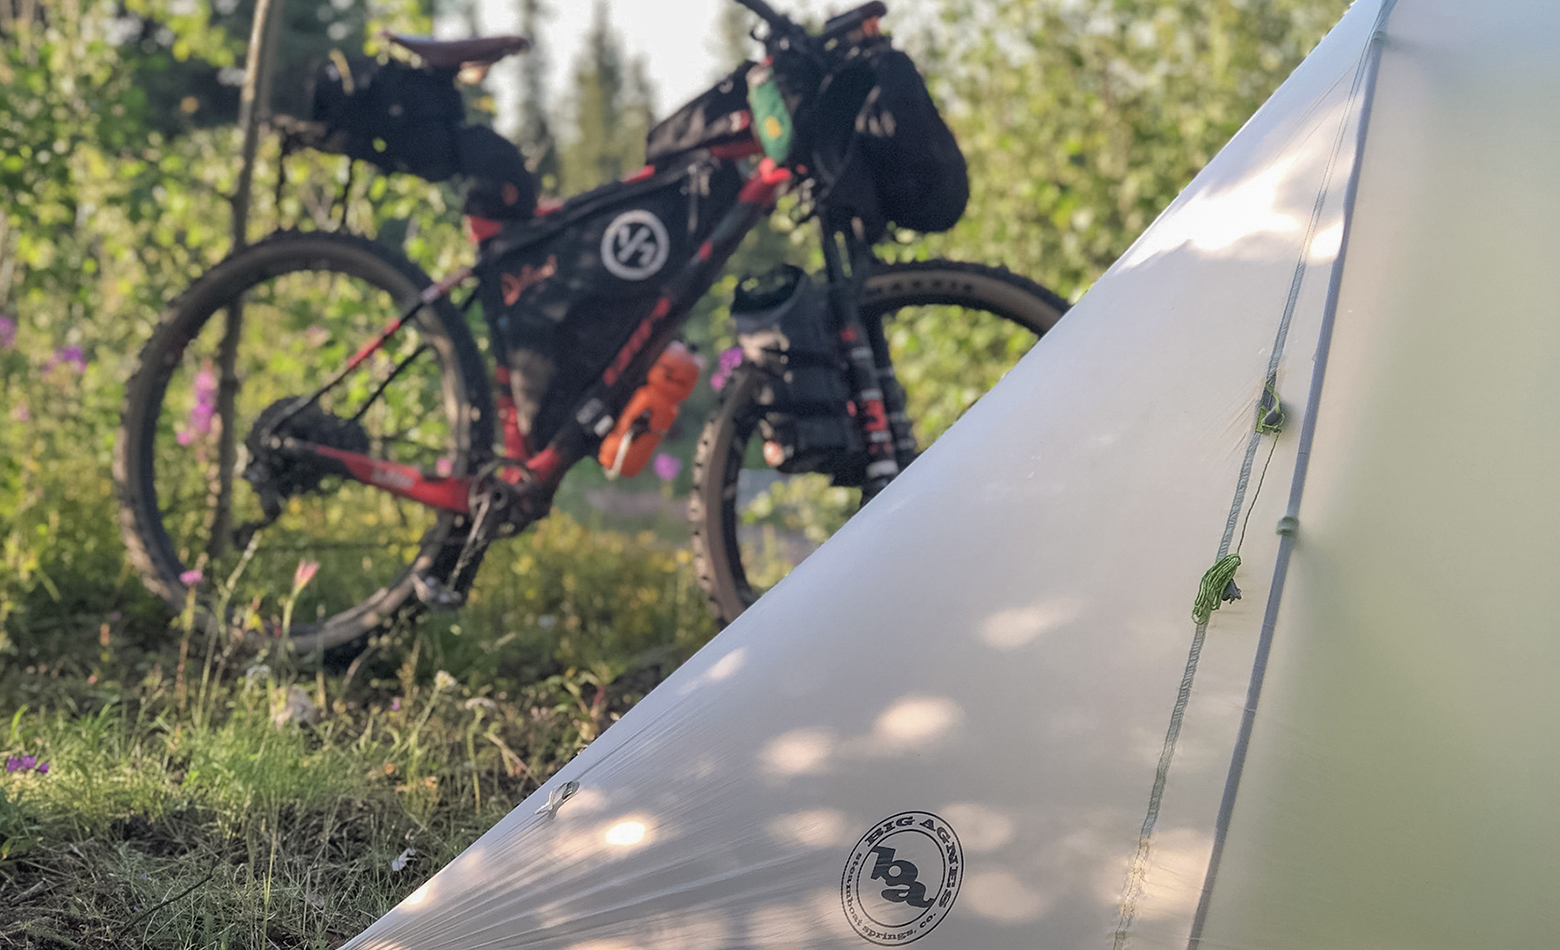 Bikepacking through Alaska has it's ups and downs. Mostly ups, but downs too.